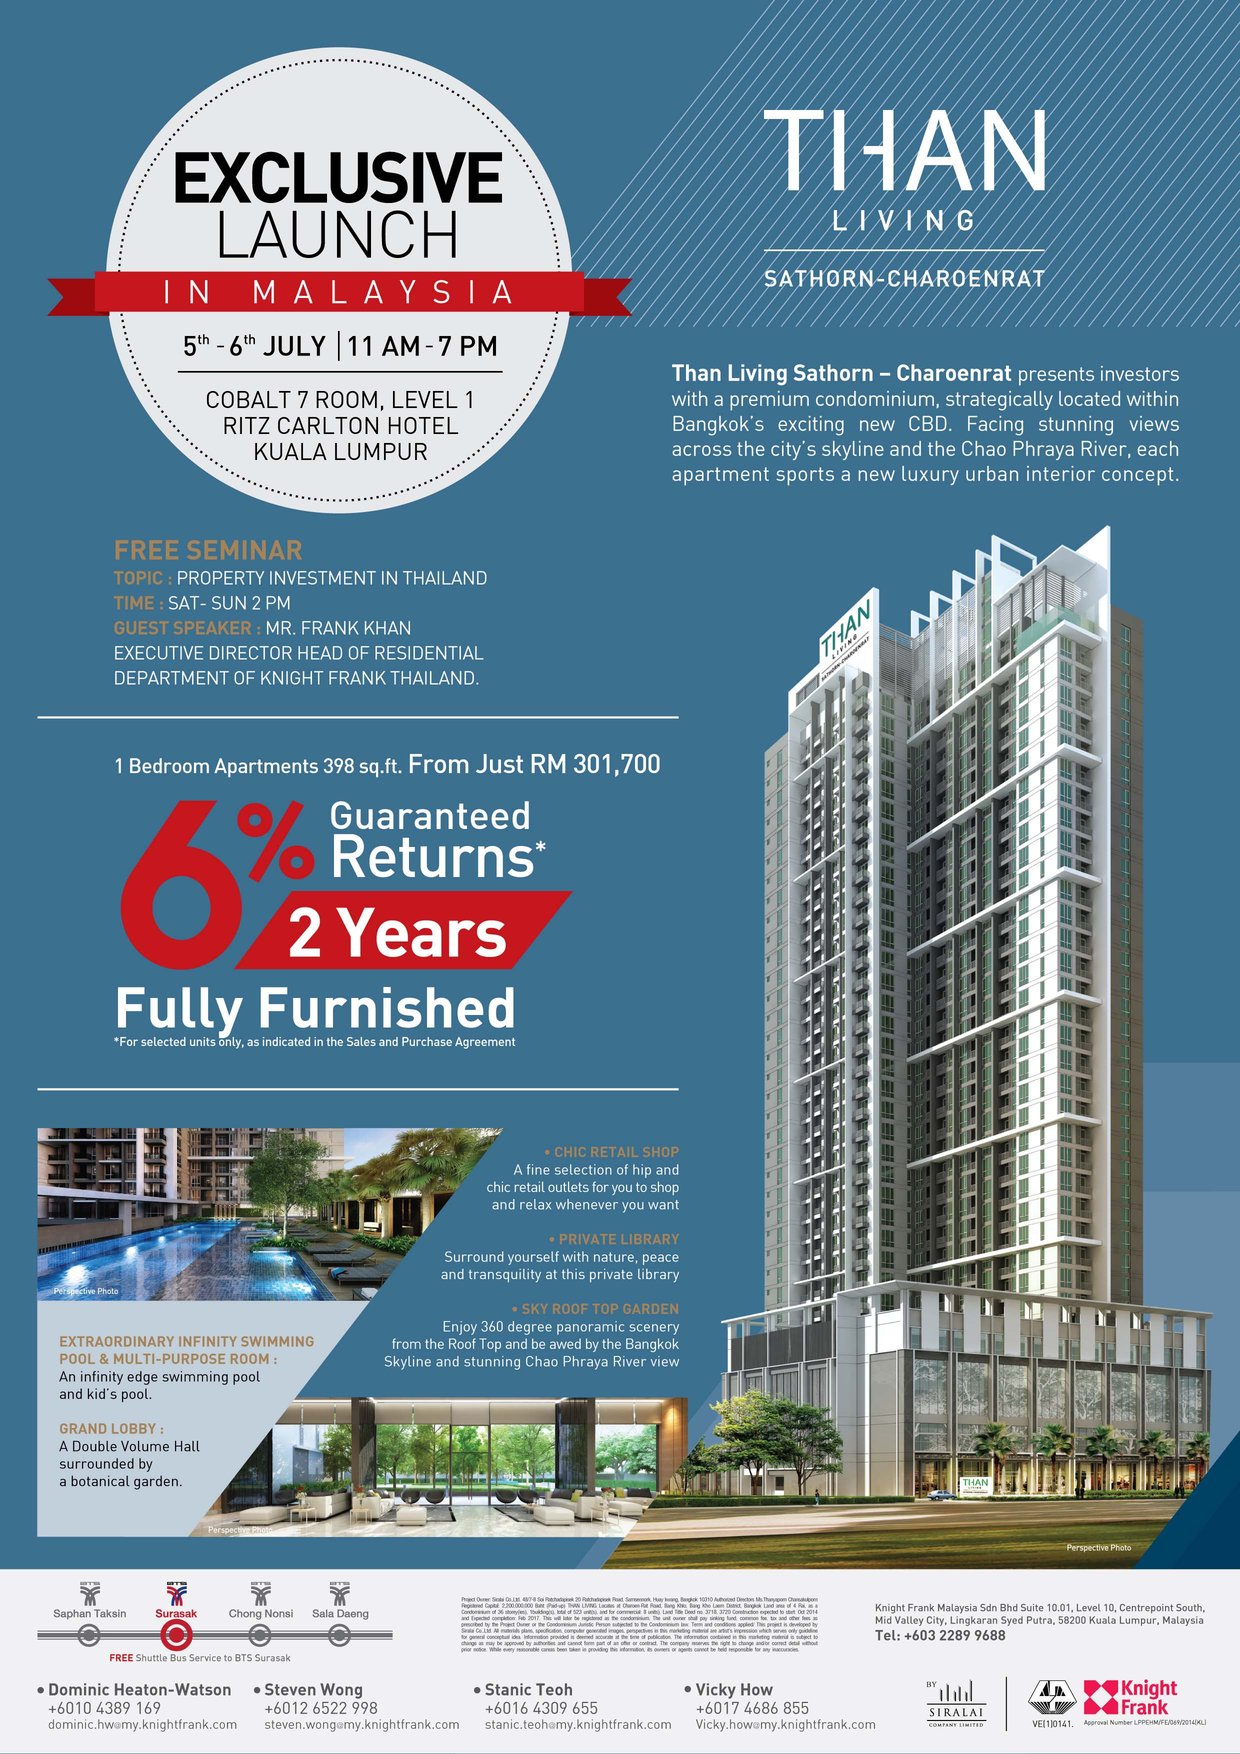 than living condominium for knight frank residential property